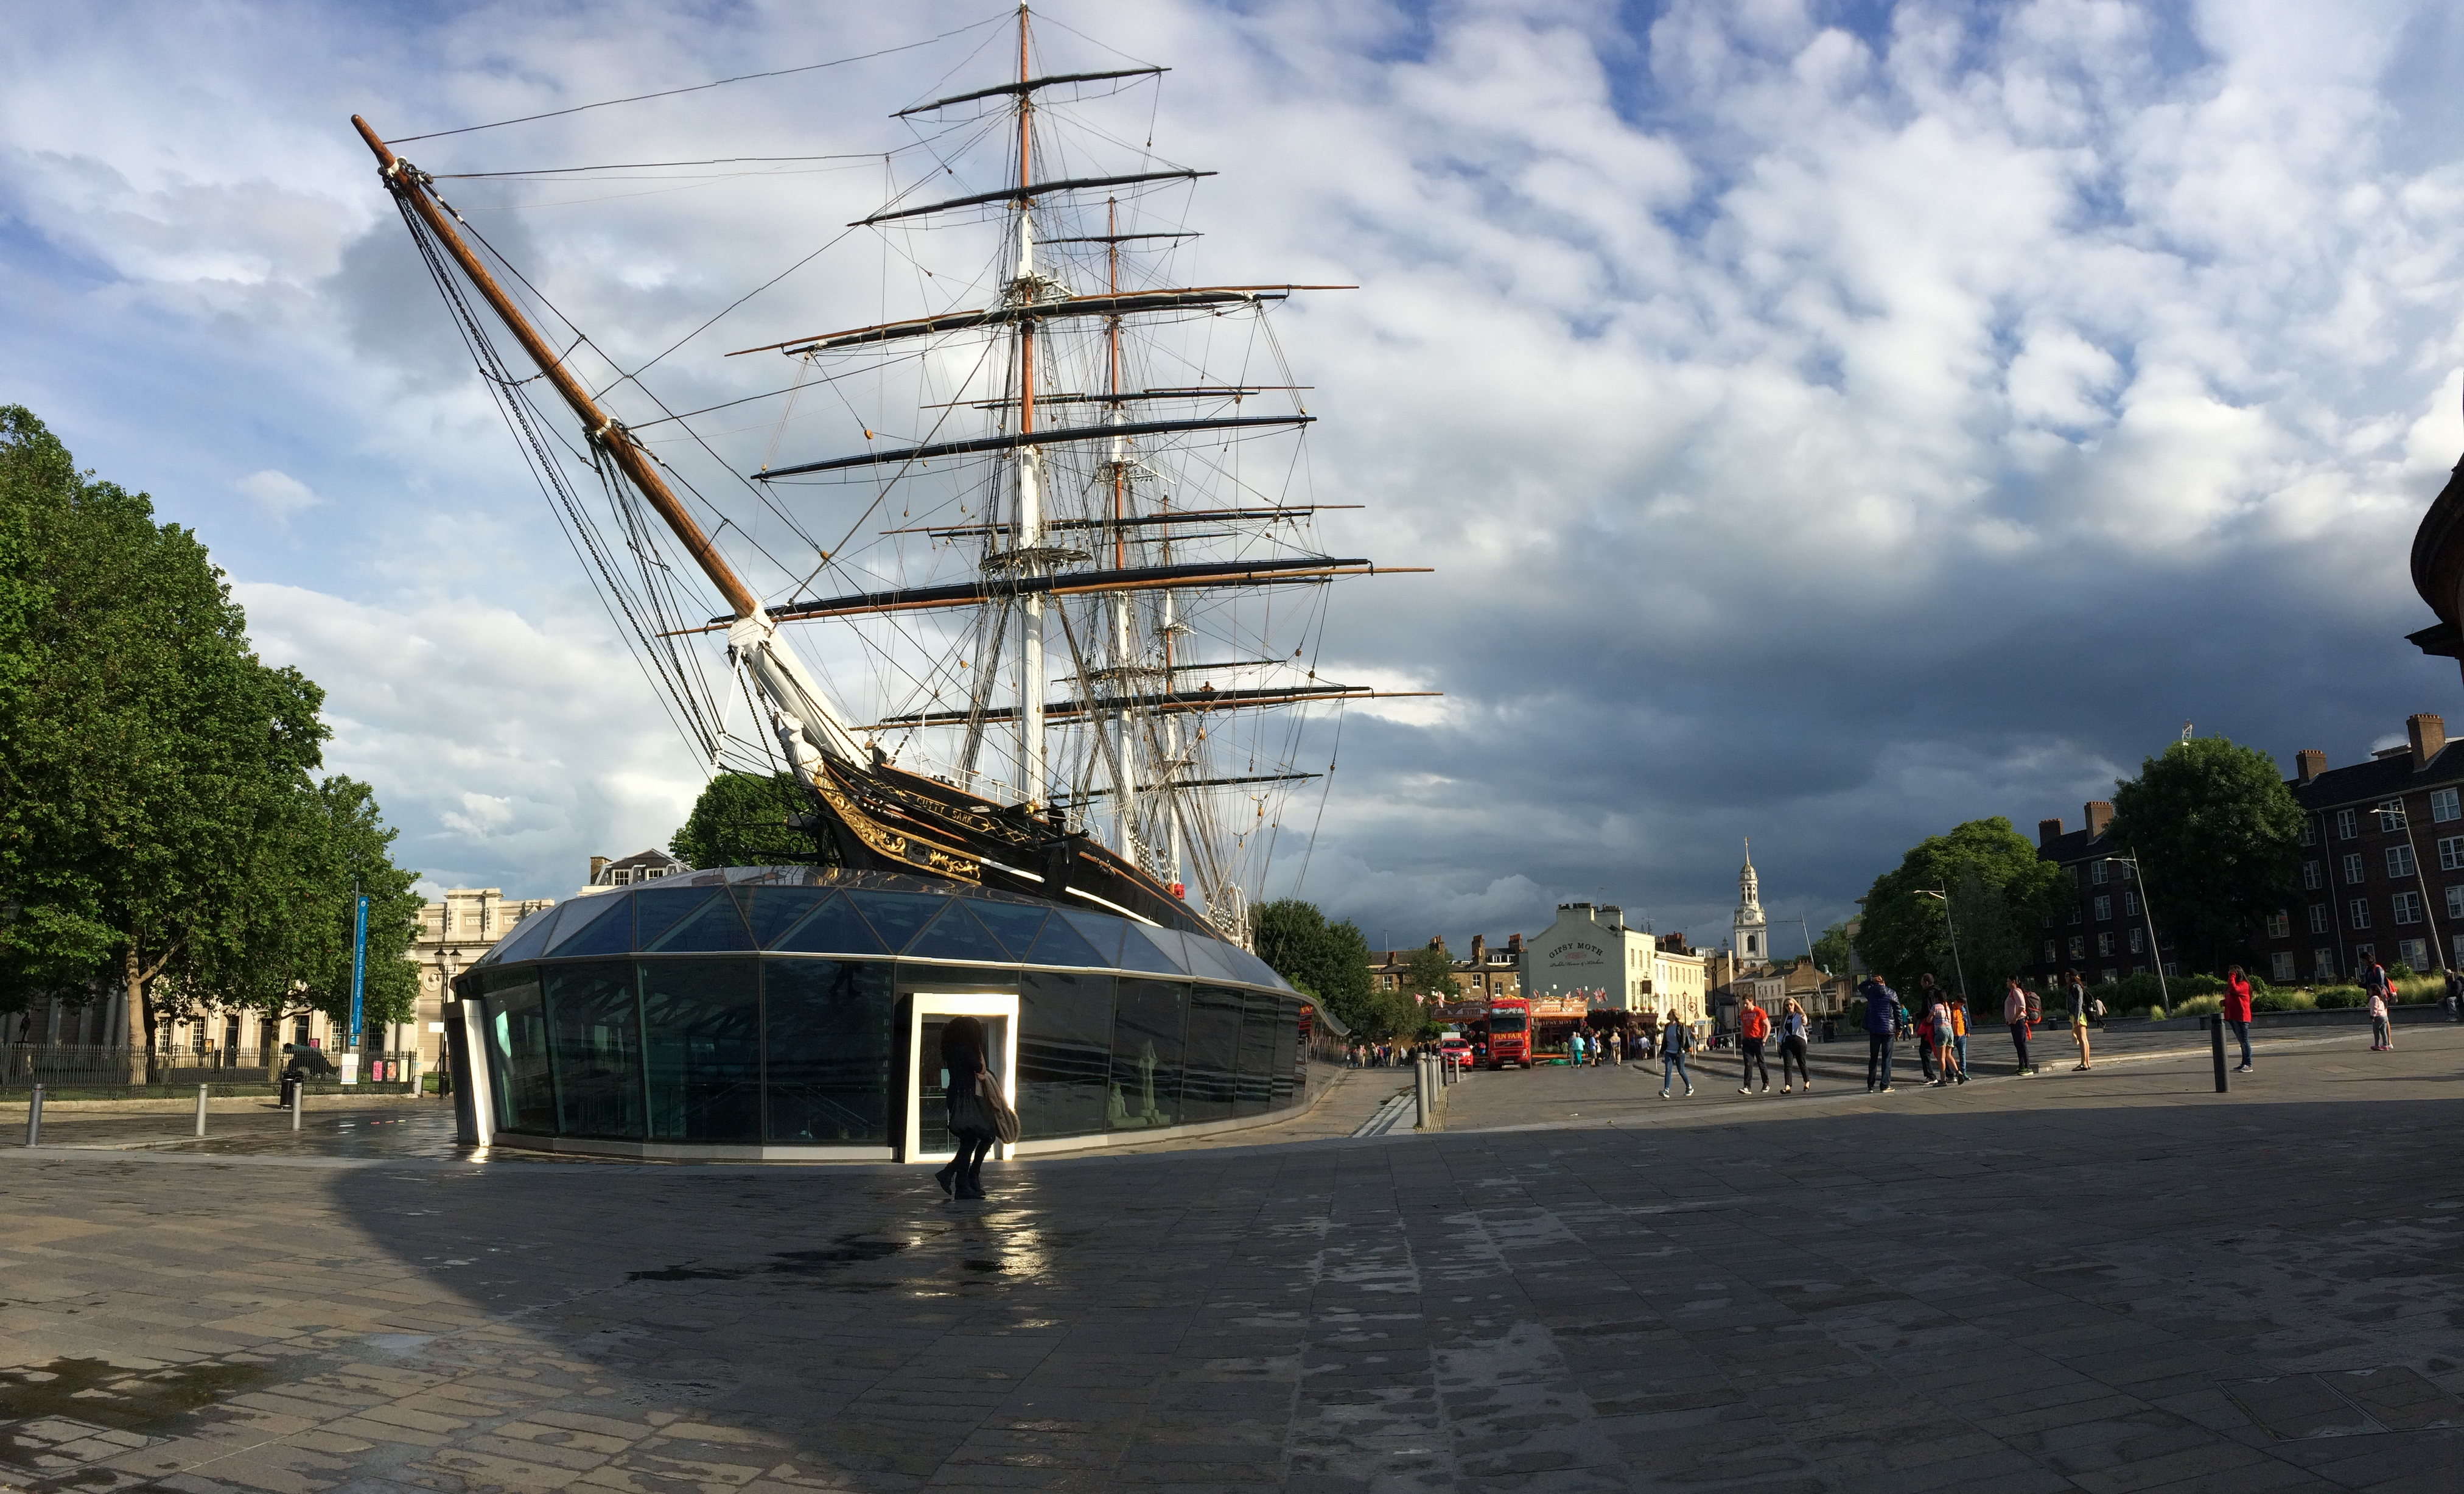 Cutty Sark in dry dock at Grewenwich